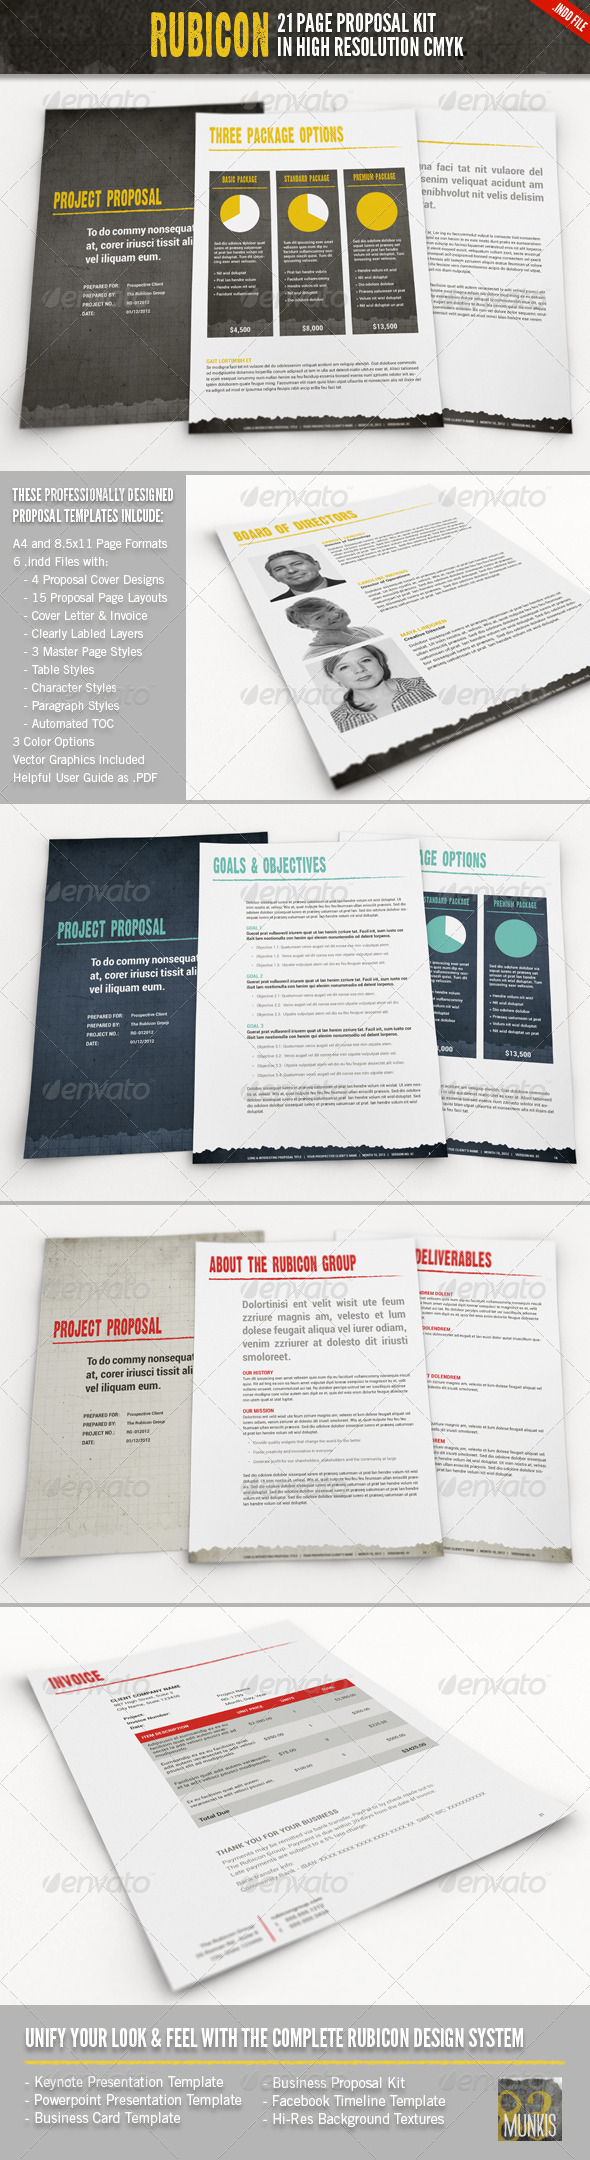 Rubicon Proposal Template Kit - Proposals & Invoices Stationery